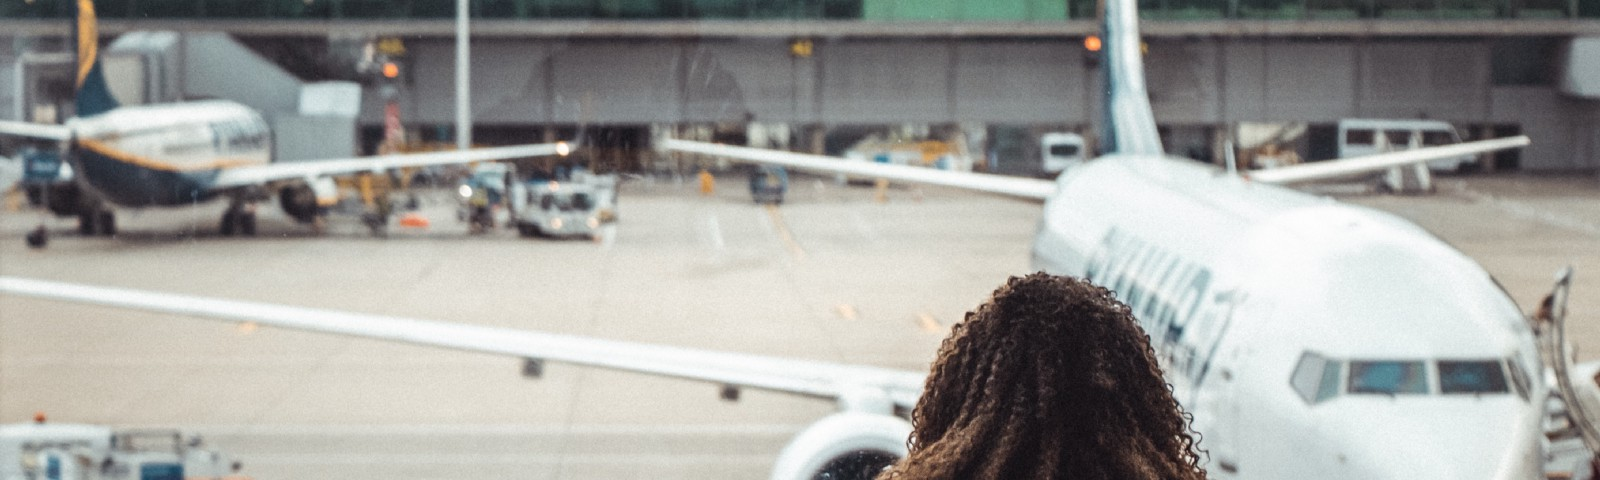 A woman stares out at a plane from a departure lounge at an airport